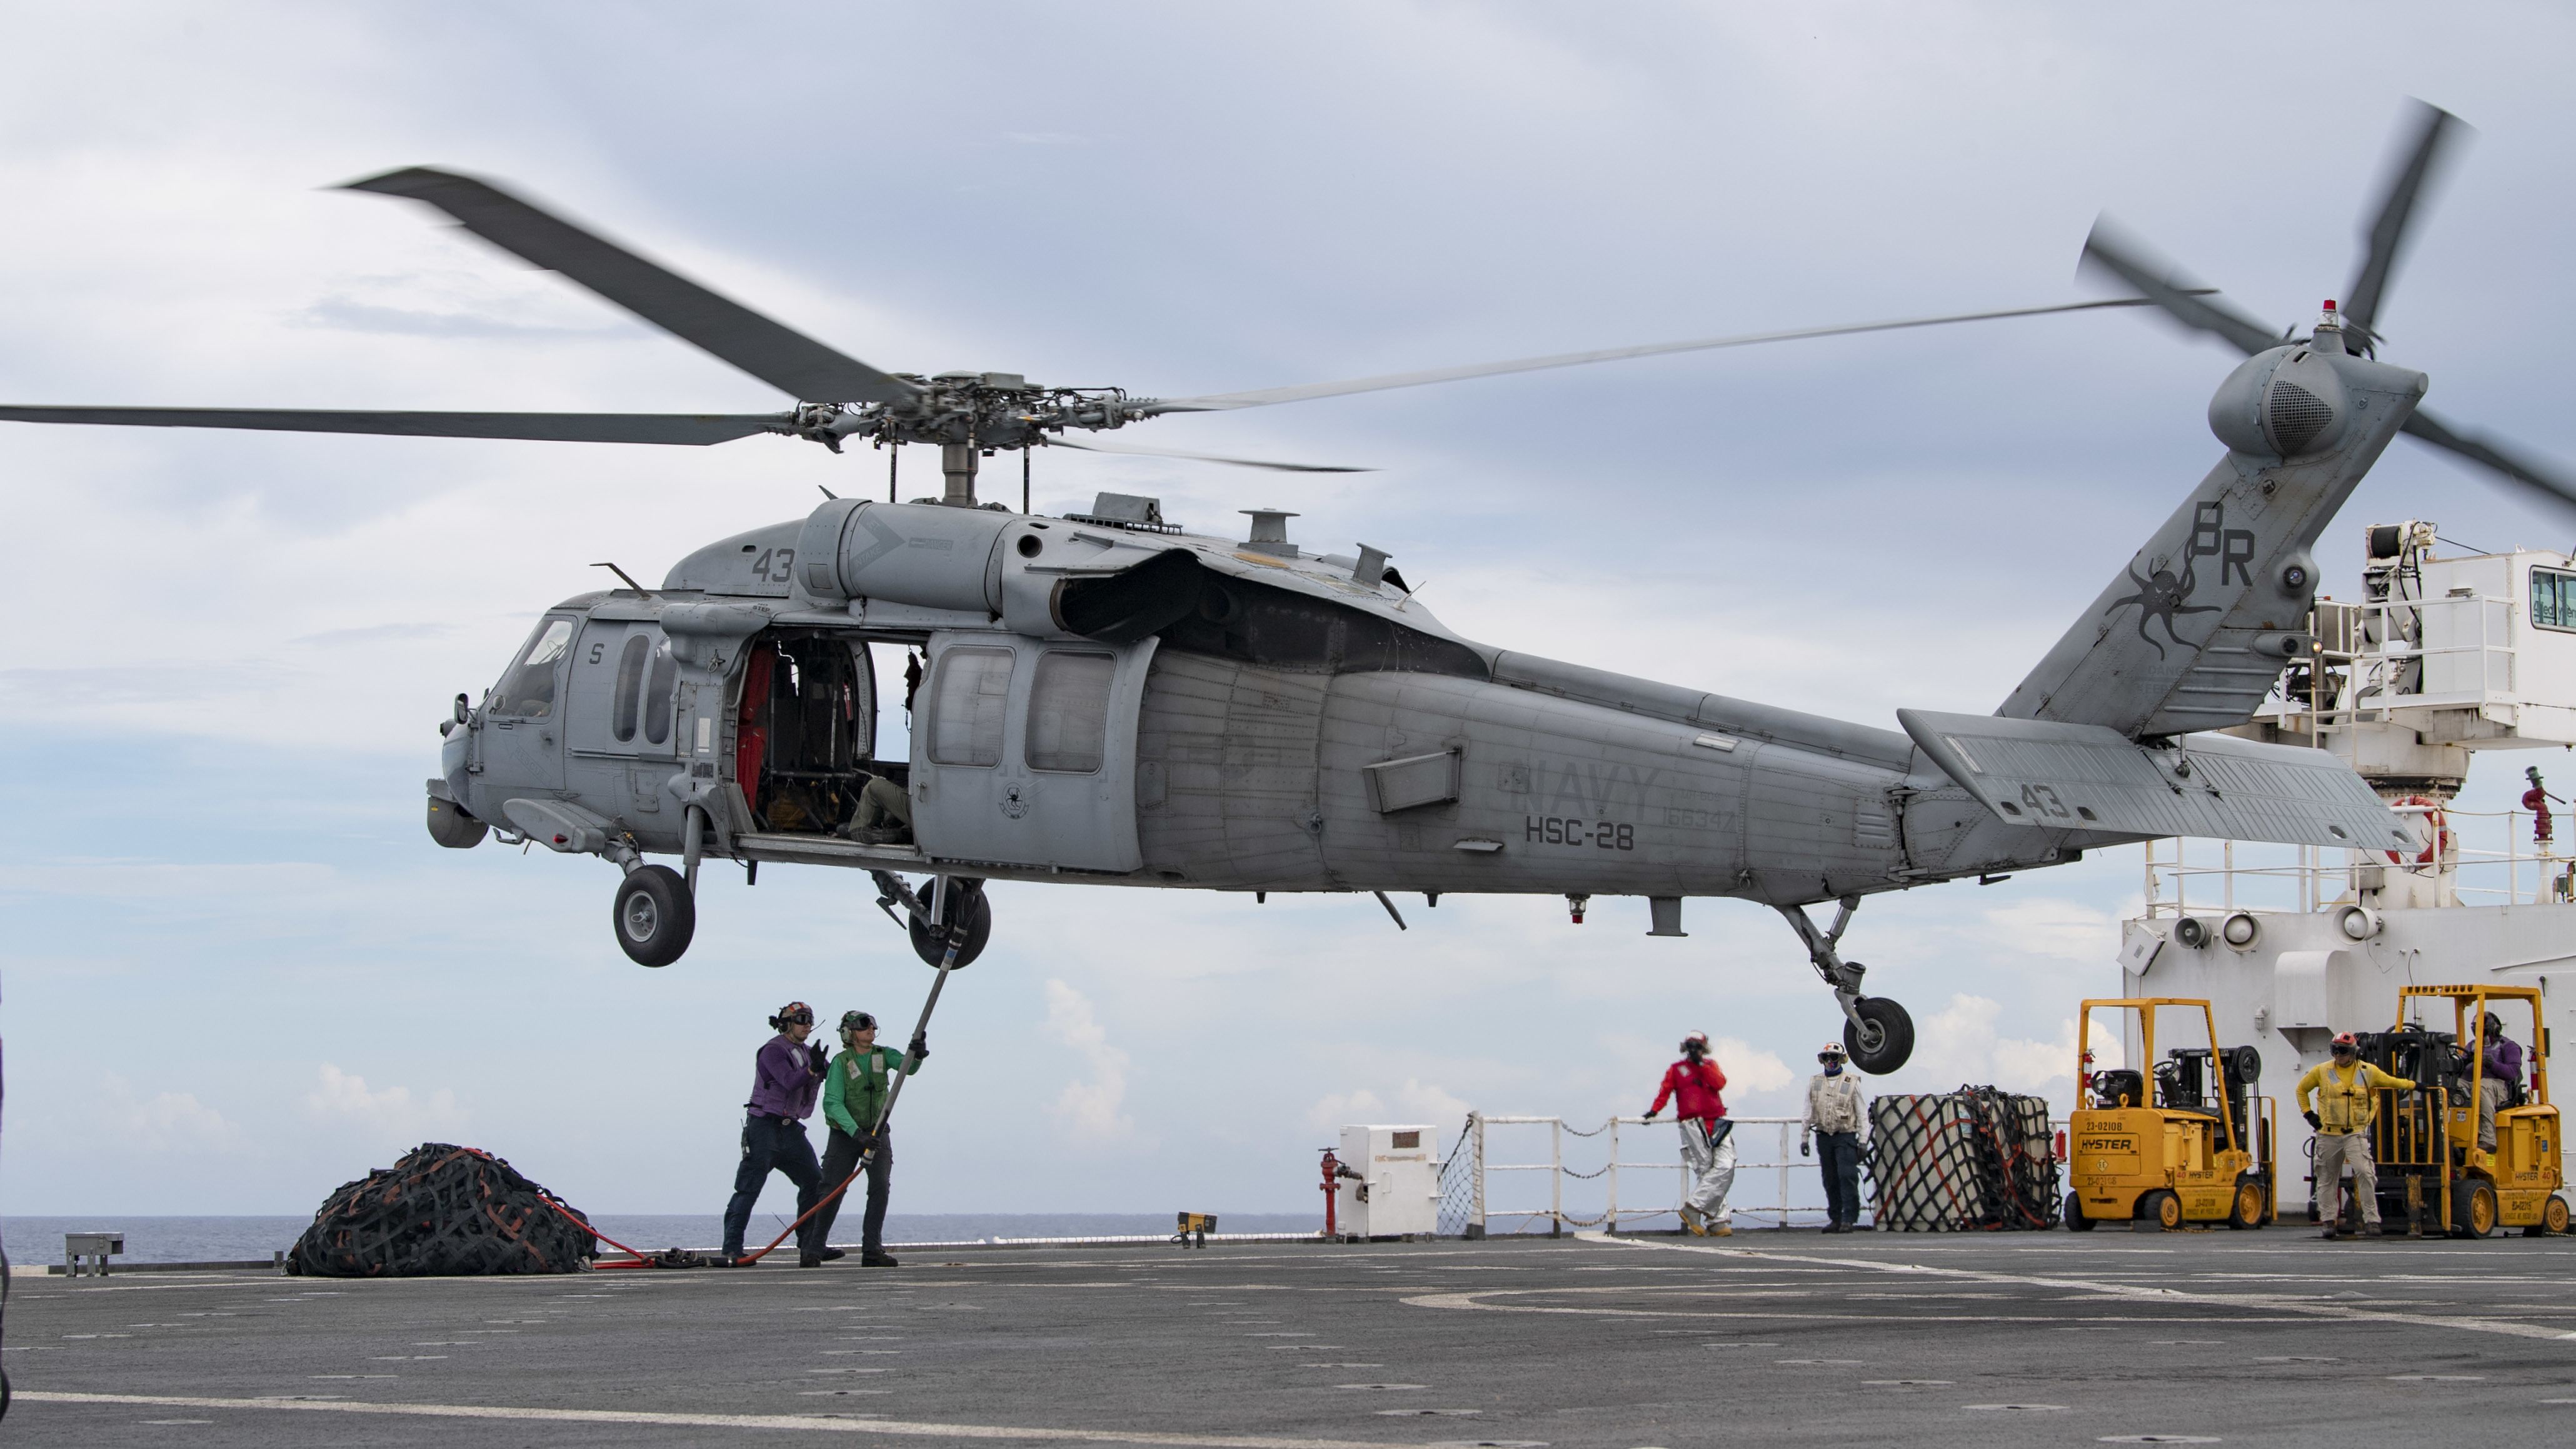 MH-60S Seahawk assigned to the Dragon Whales of Helicopter Sea Combat Squadron 28